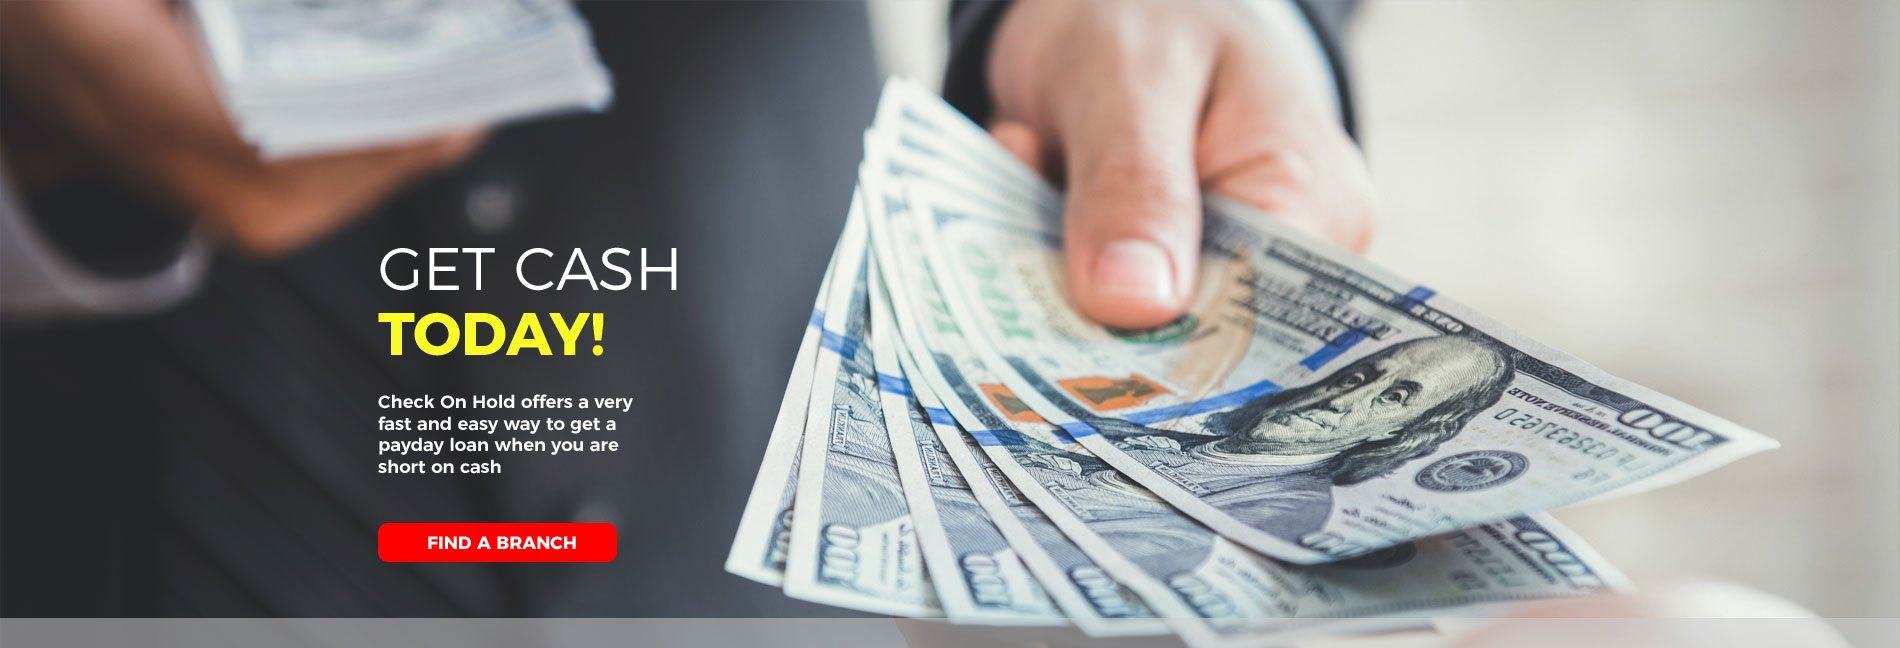 Pay Day Loans Palm Coast Altamonte Springs Cash Advance Services